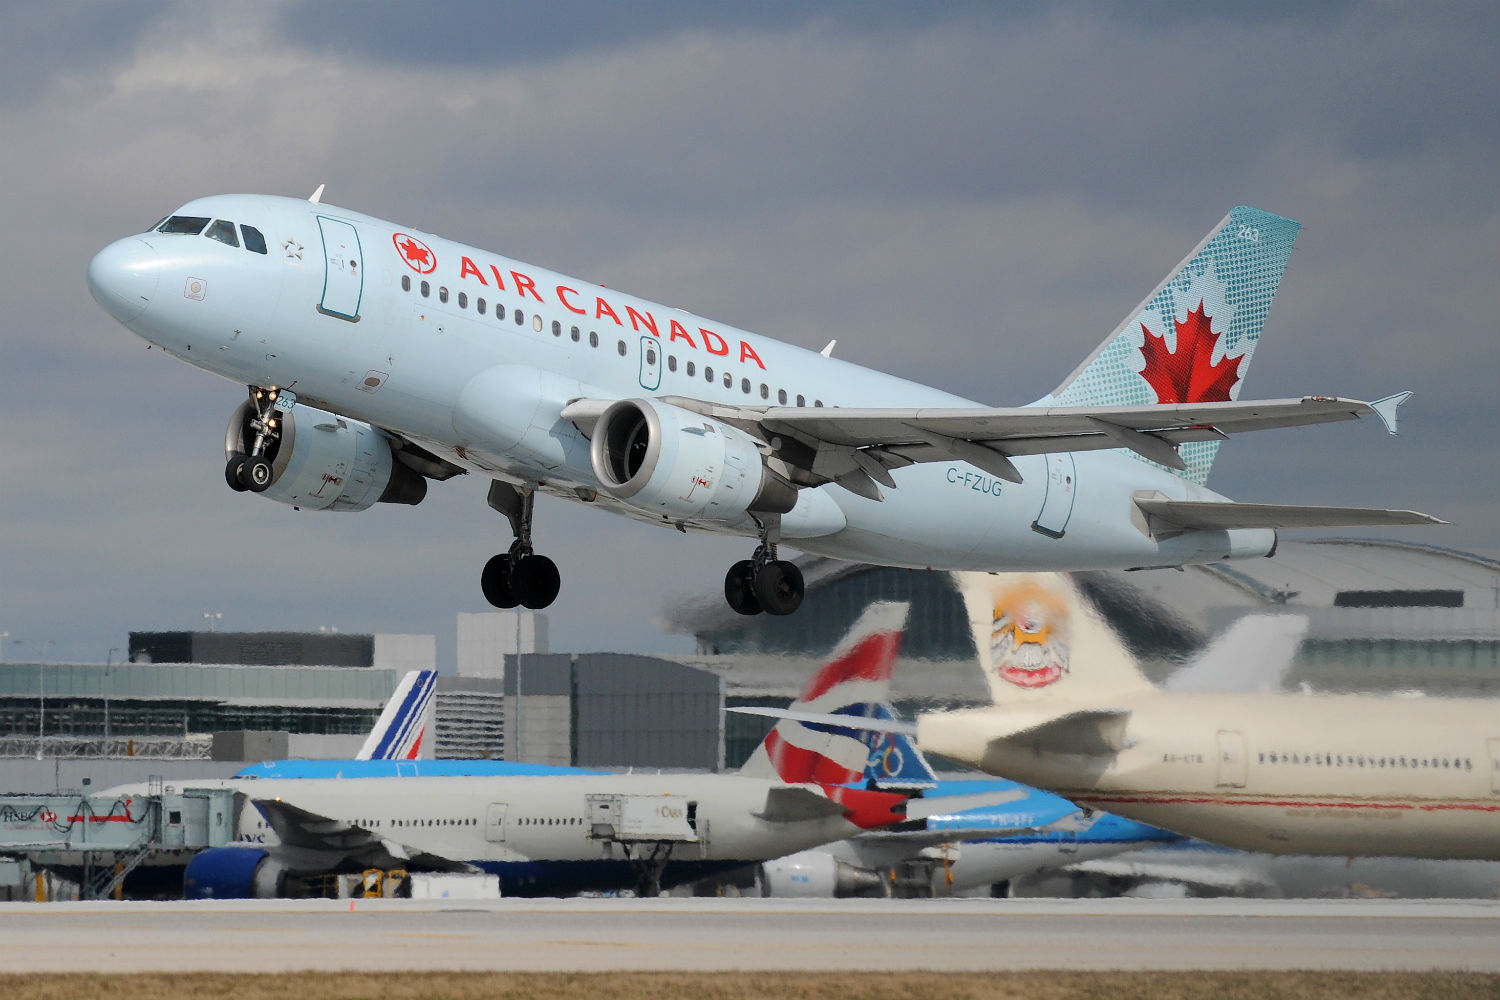 Air Canada A319 in flight.